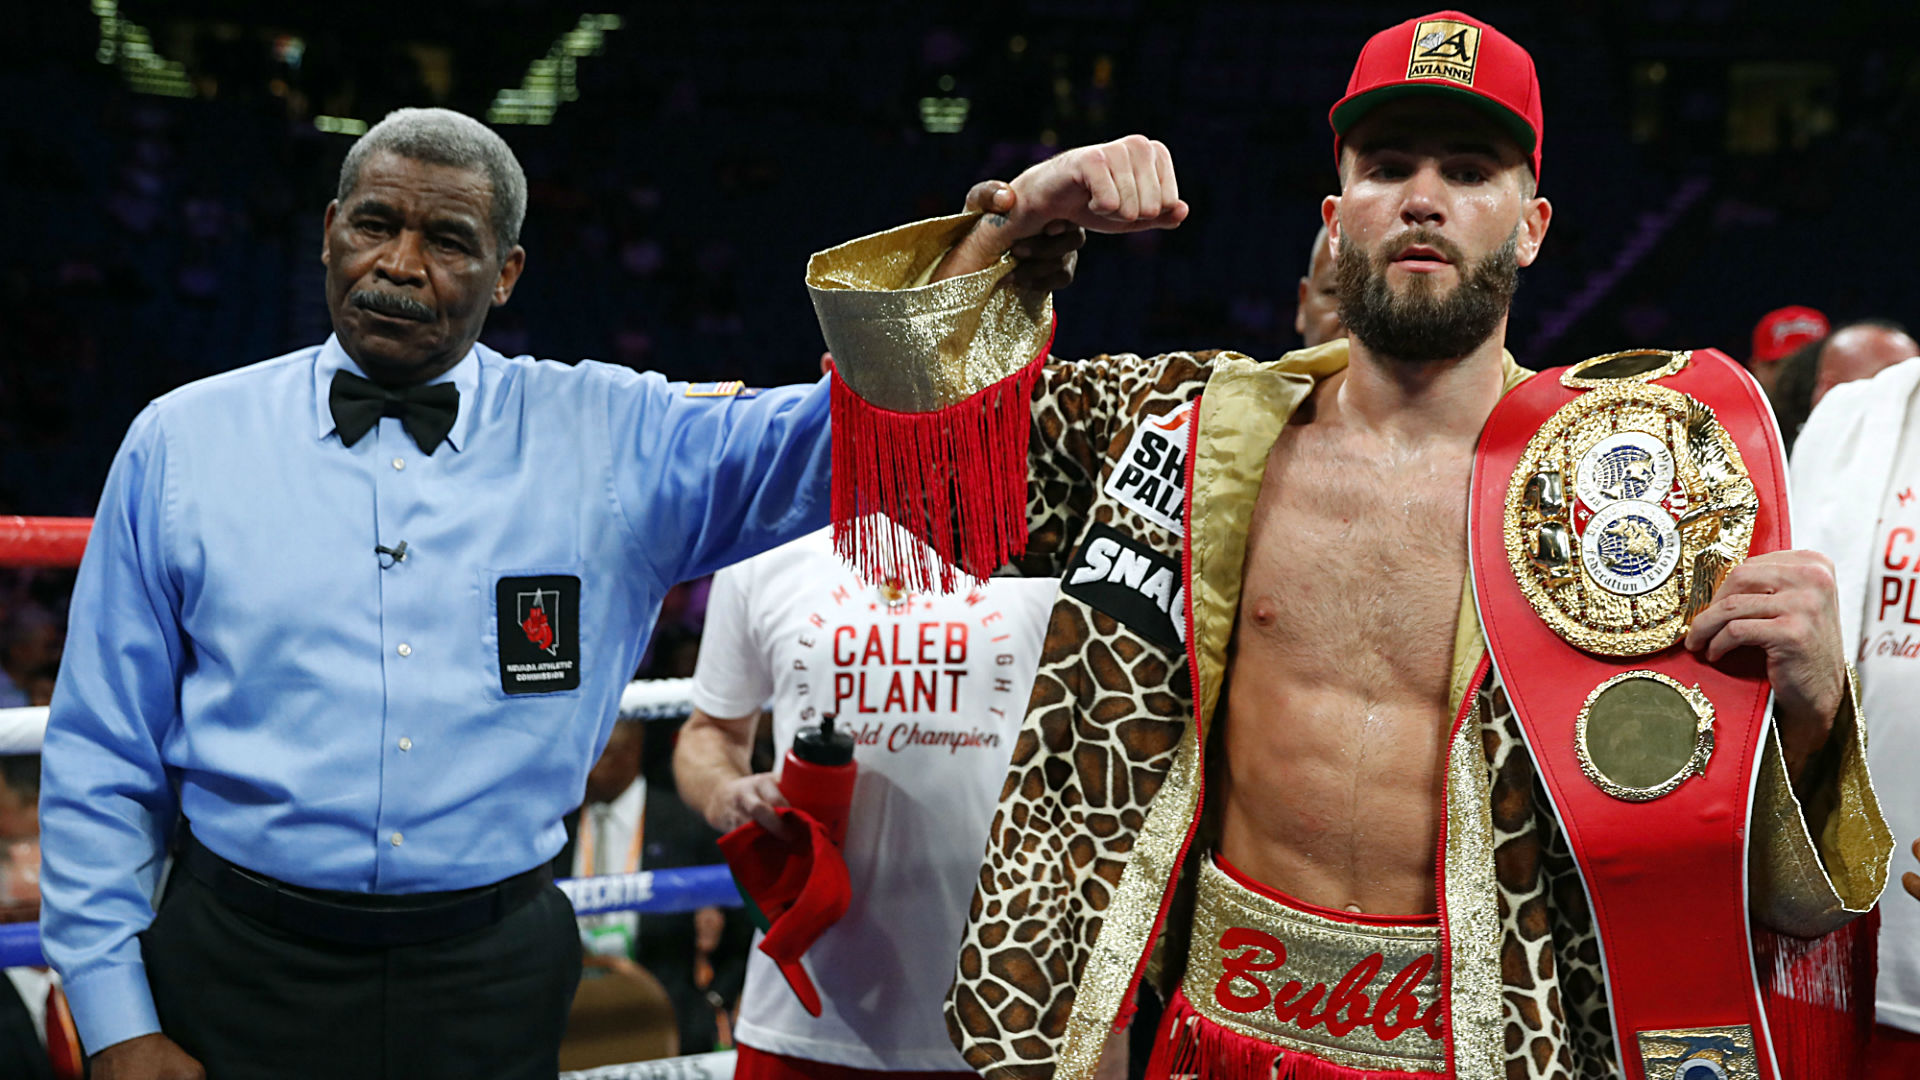 What Options Does Caleb Plant Have?